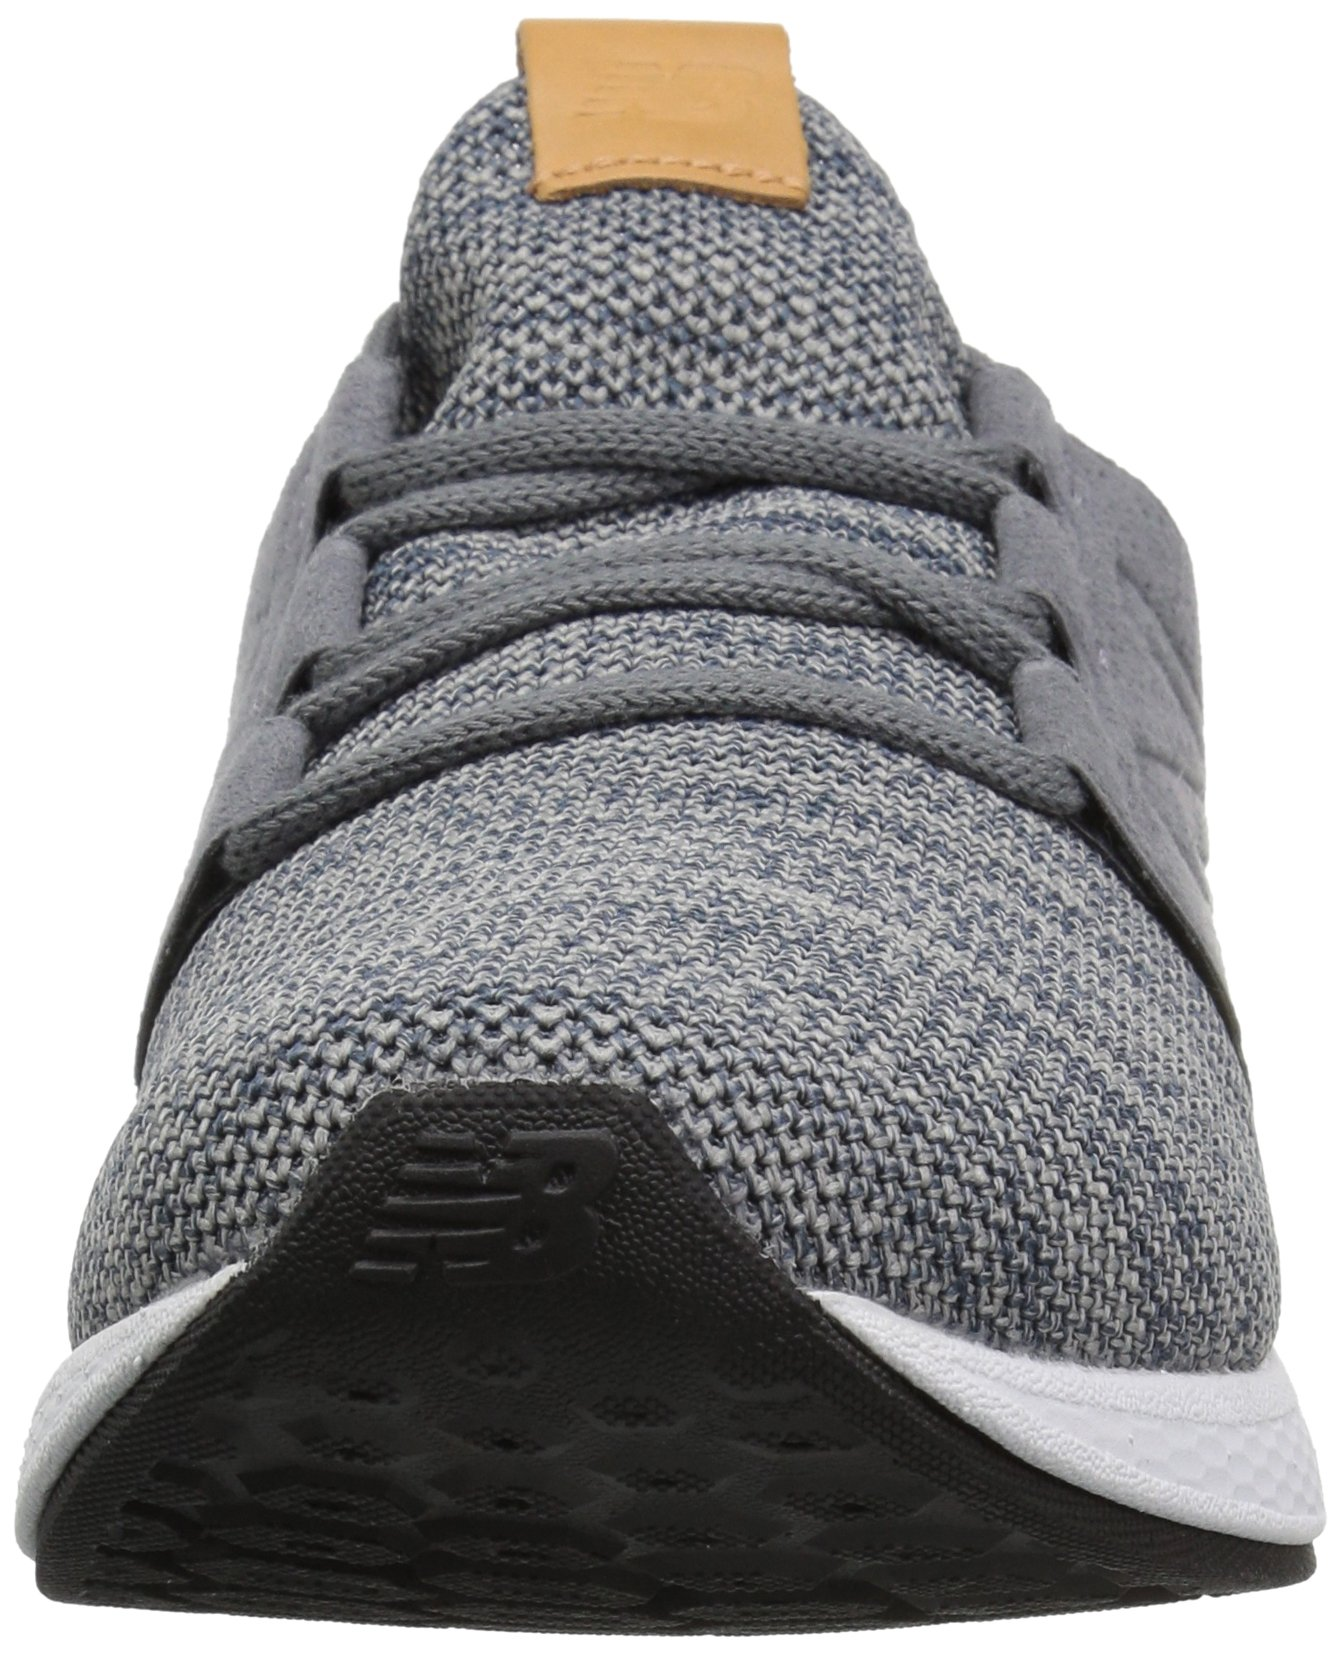 New Balance Men's Cruz V2 Fresh Foam Running Shoe, Gunmetal / Thunder, 7 D US by New Balance (Image #4)